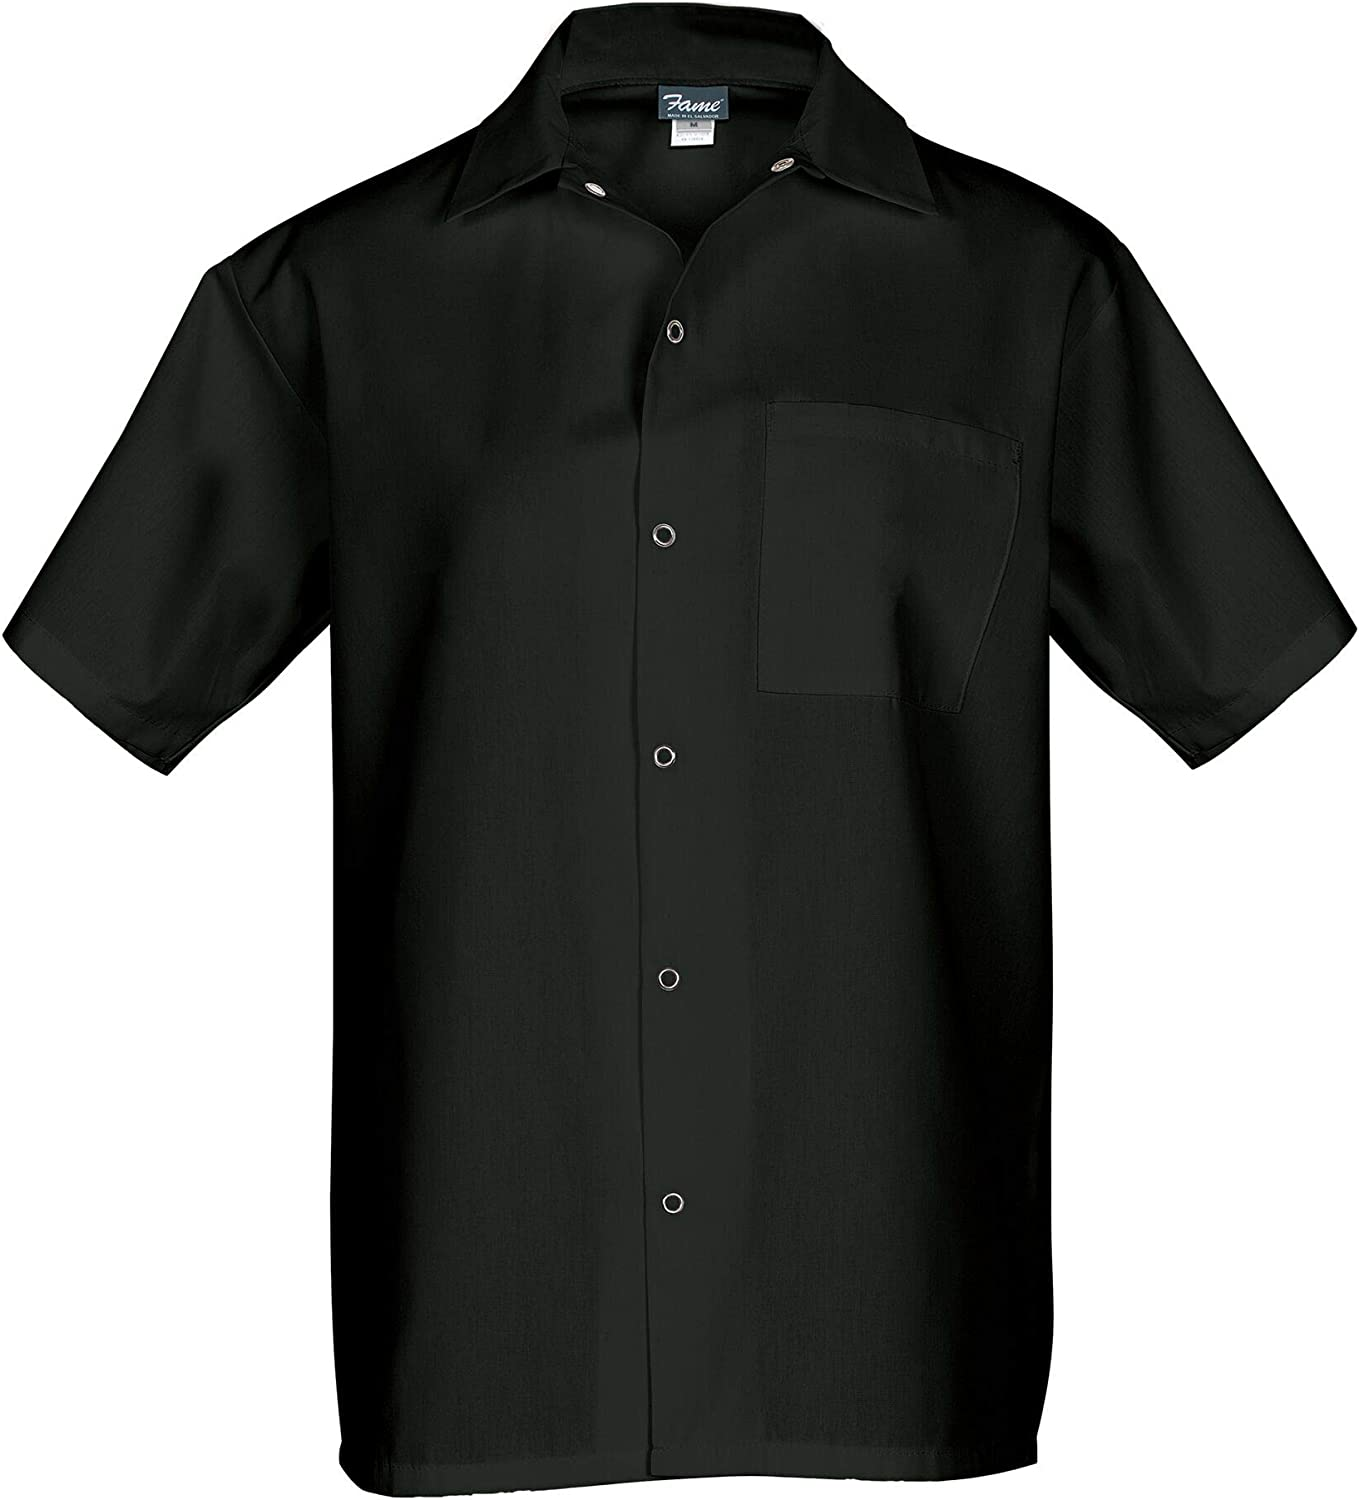 Fame Short Sleeve Cook Shirt